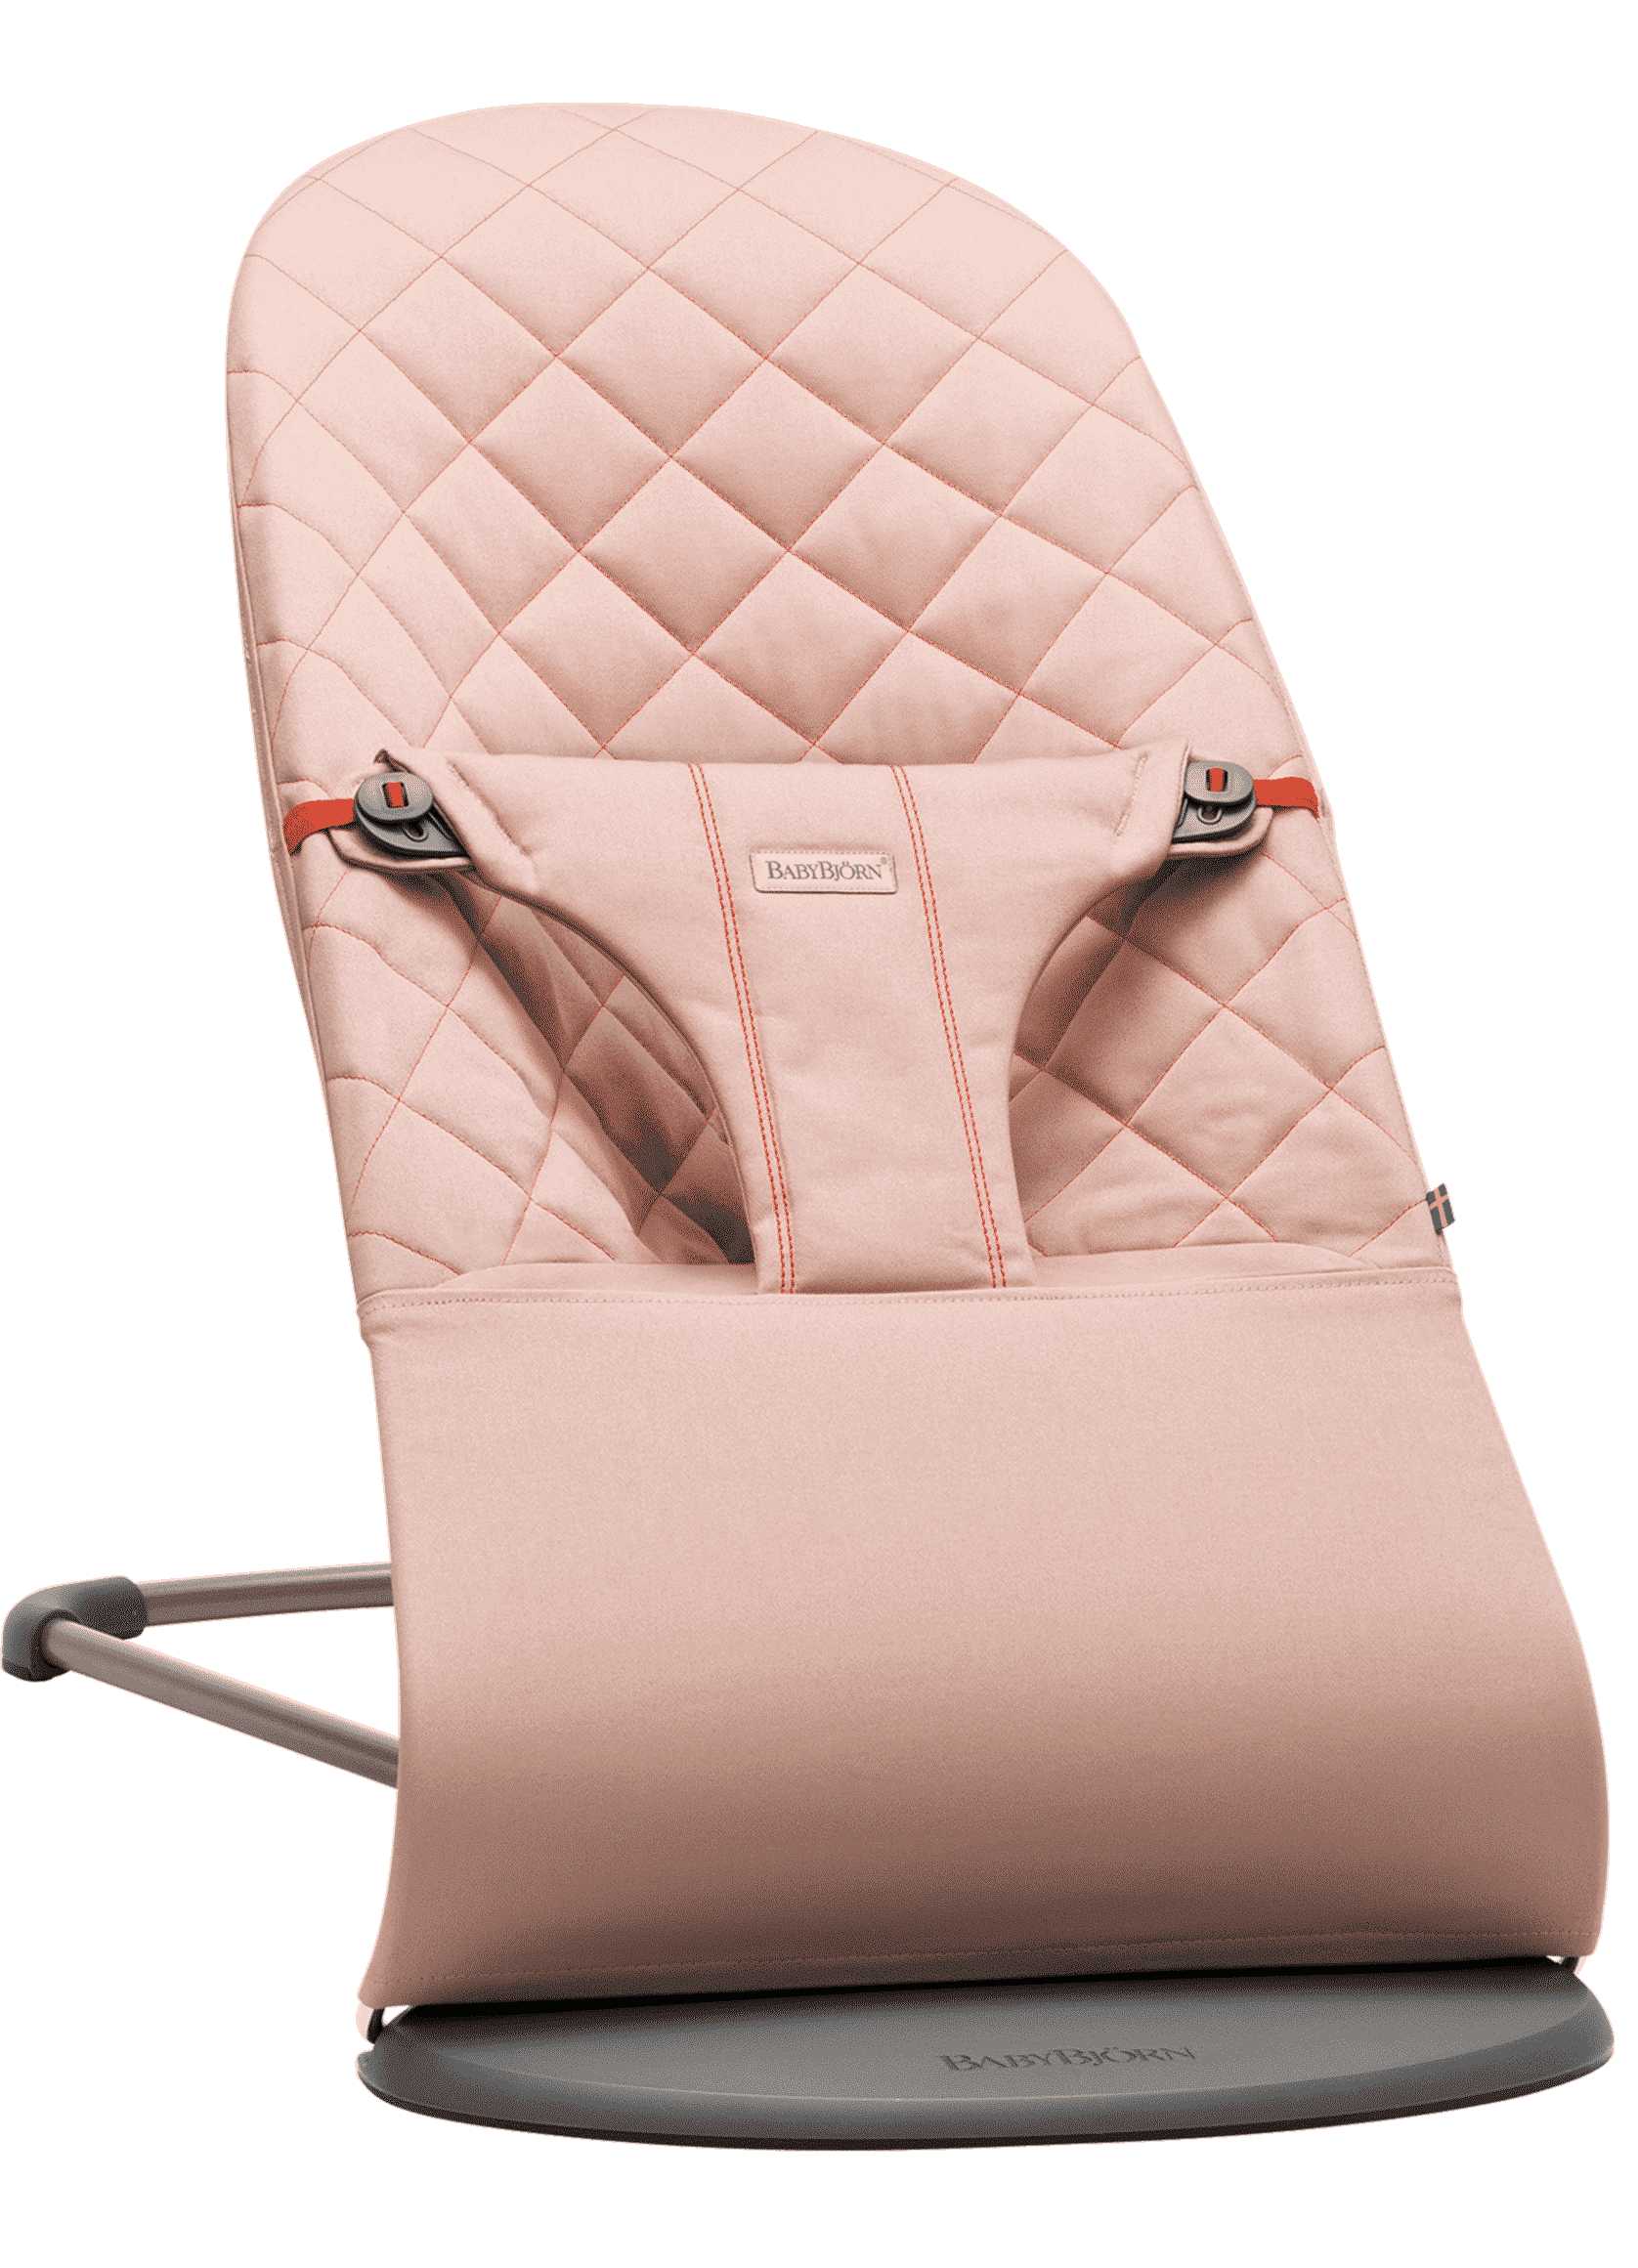 babybjorn-bouncer-bliss-old-rose-cotton-